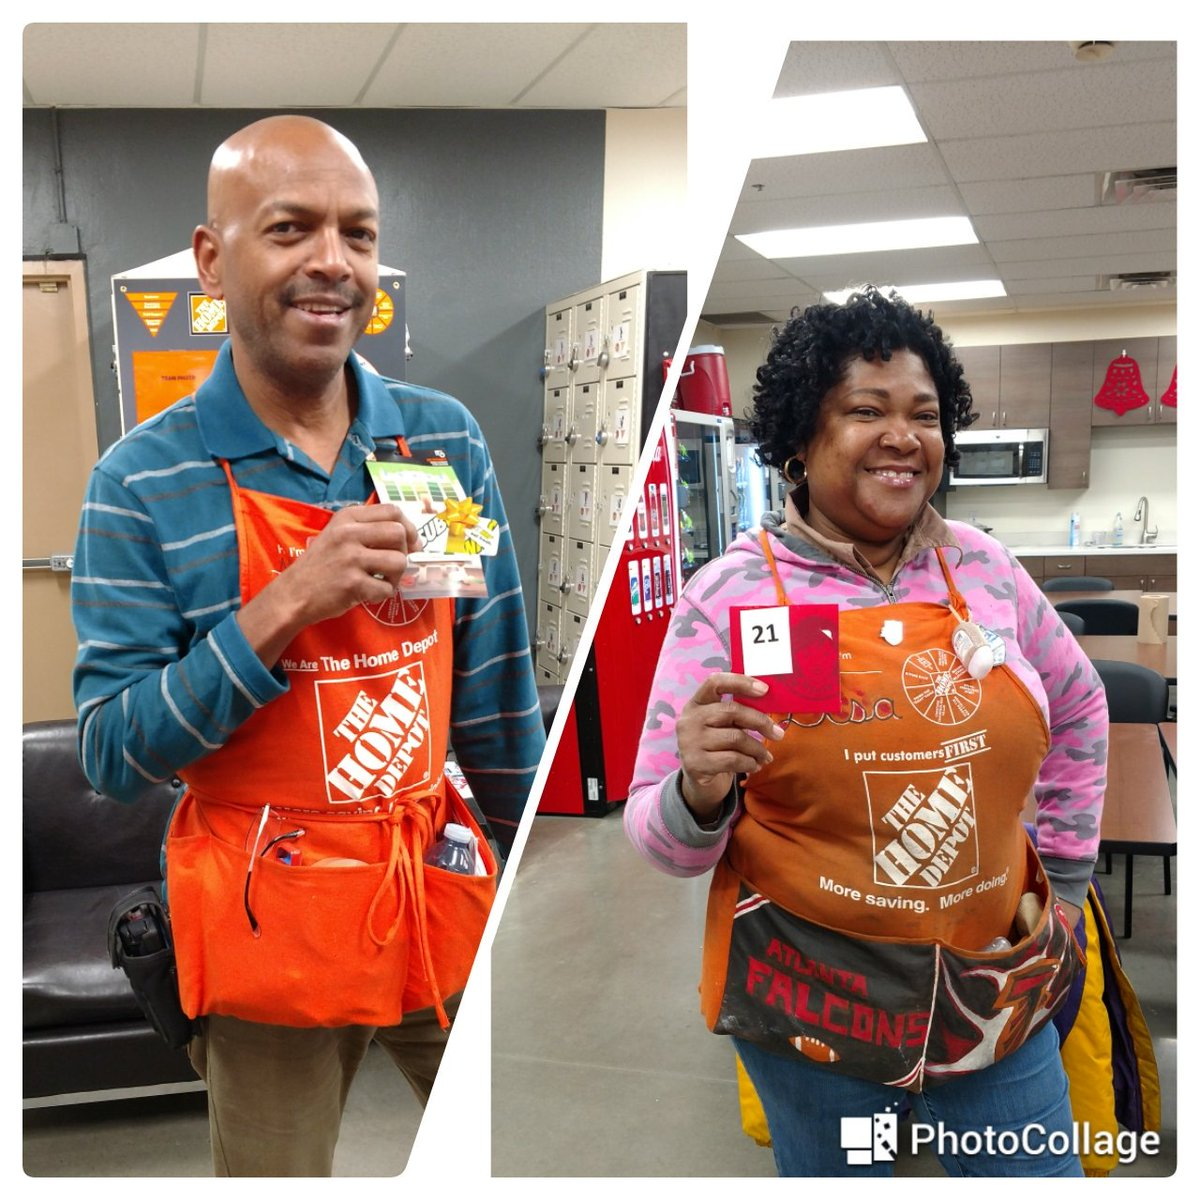 More winners from the 24 Days of JOY! @08Speer @Conyers0128  @jhiltonthd  @JPatton89